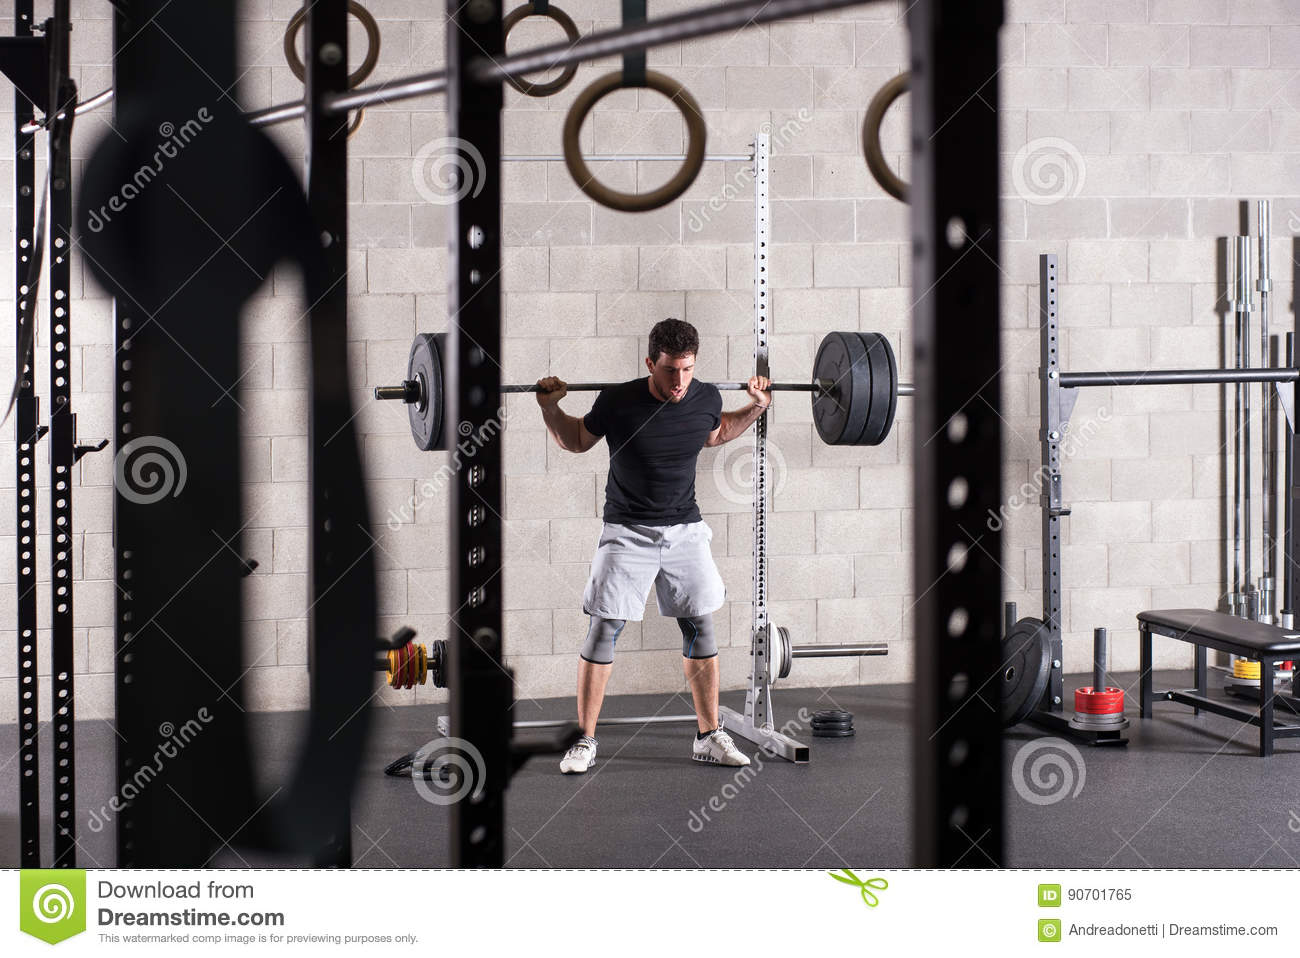 man lifting heavy barbell on squat rack stock image image of barbell athlete 90701765